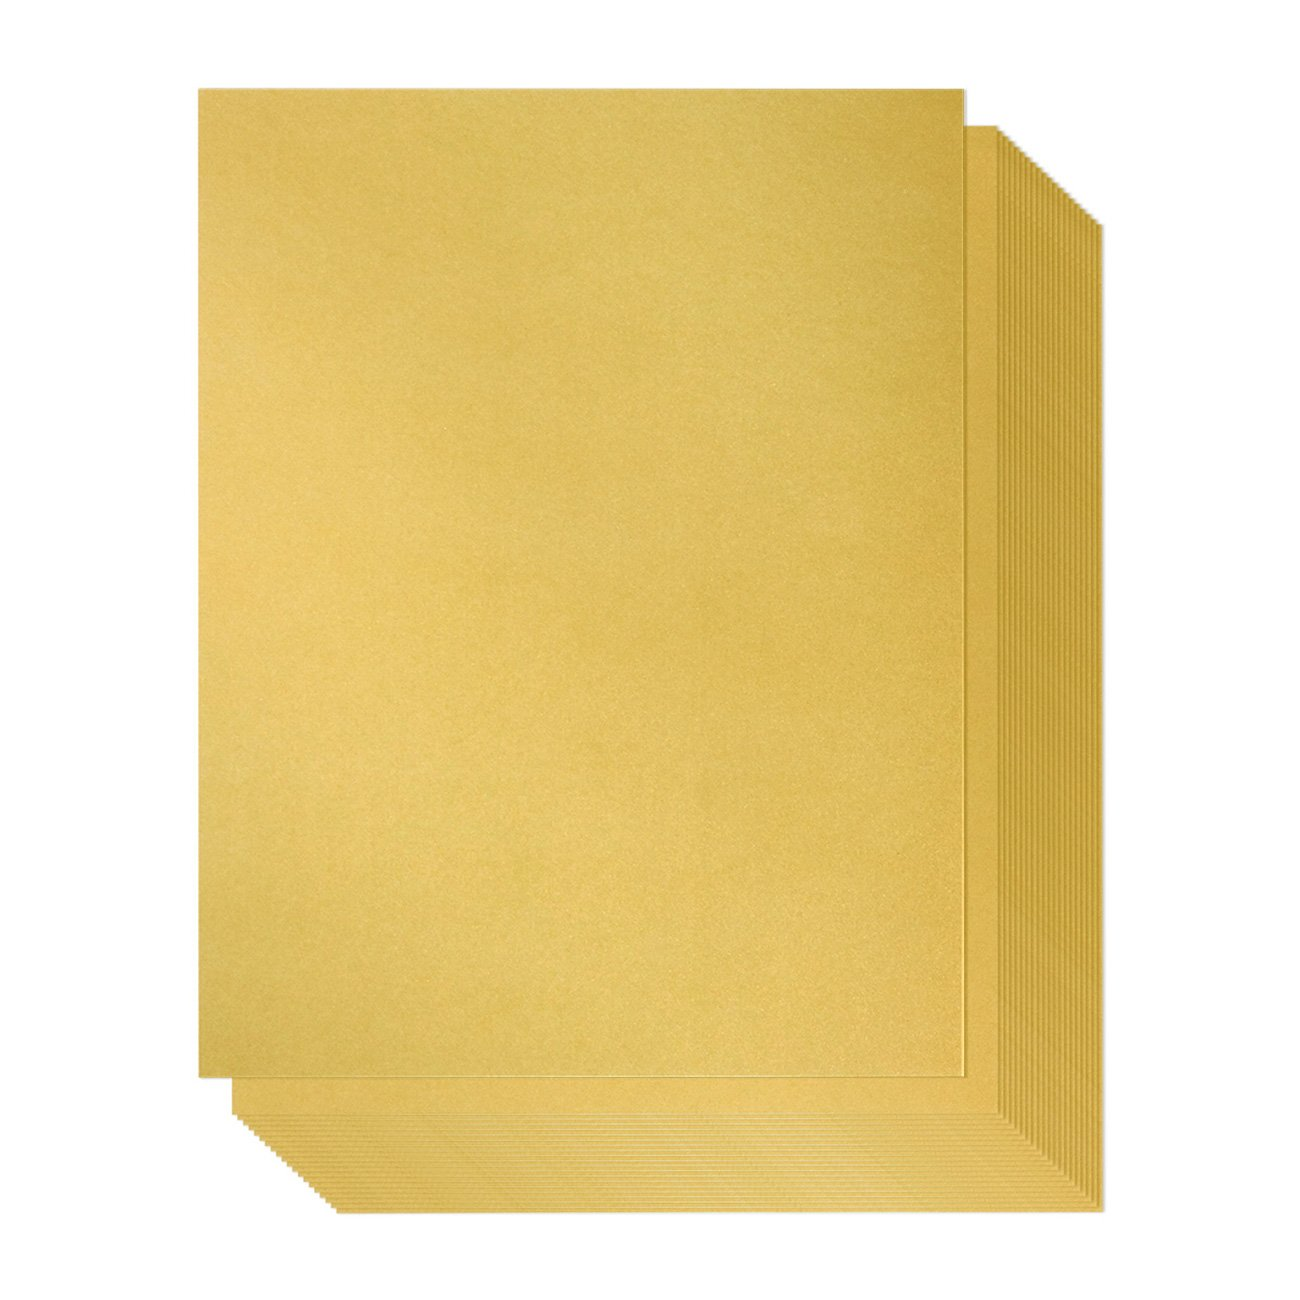 Shimmer Paper – 96-Pack Gold Metallic Cardstock Paper, Double Sided, Laser Printer Friendly - Perfect for Weddings, Baby Showers, Birthdays, Craft Use, Letter Size Sheets, 8.5 x 0.03 x 11 Inches